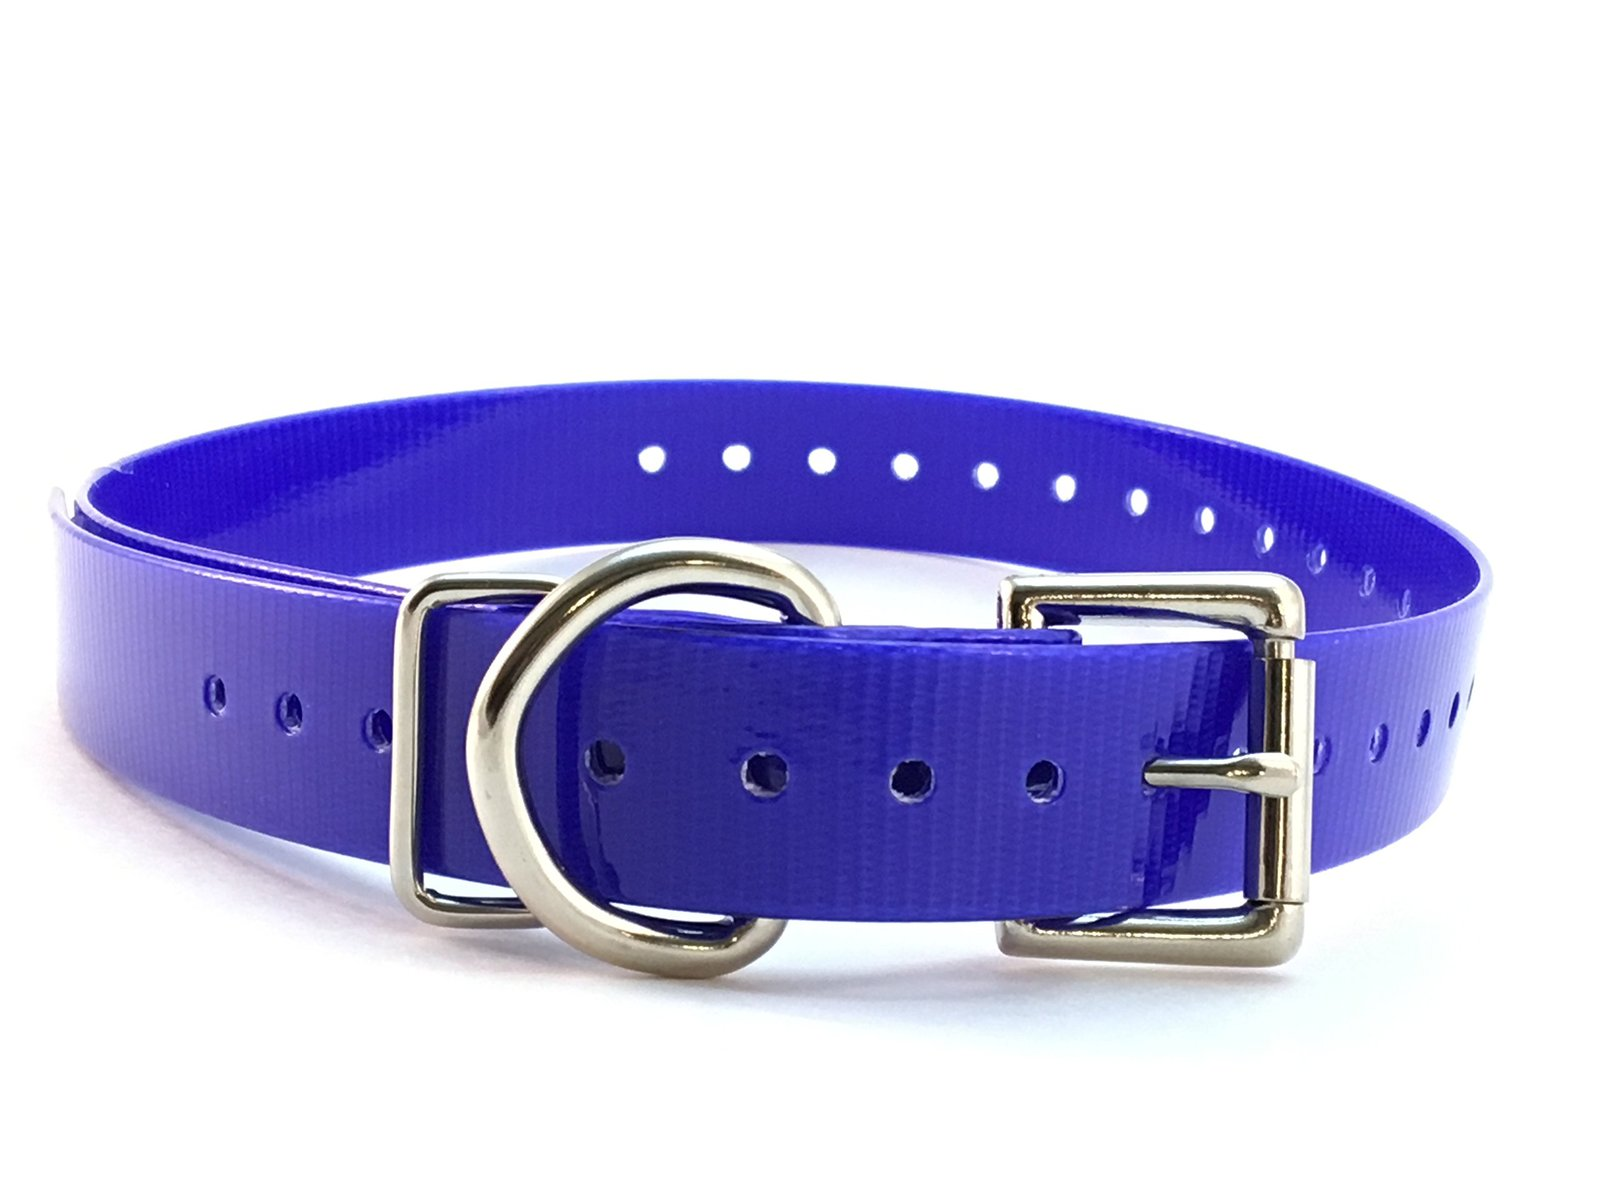 Sport Dog 3/4' High Flex Waterproof Roller Buckle Dog Strap, Blue